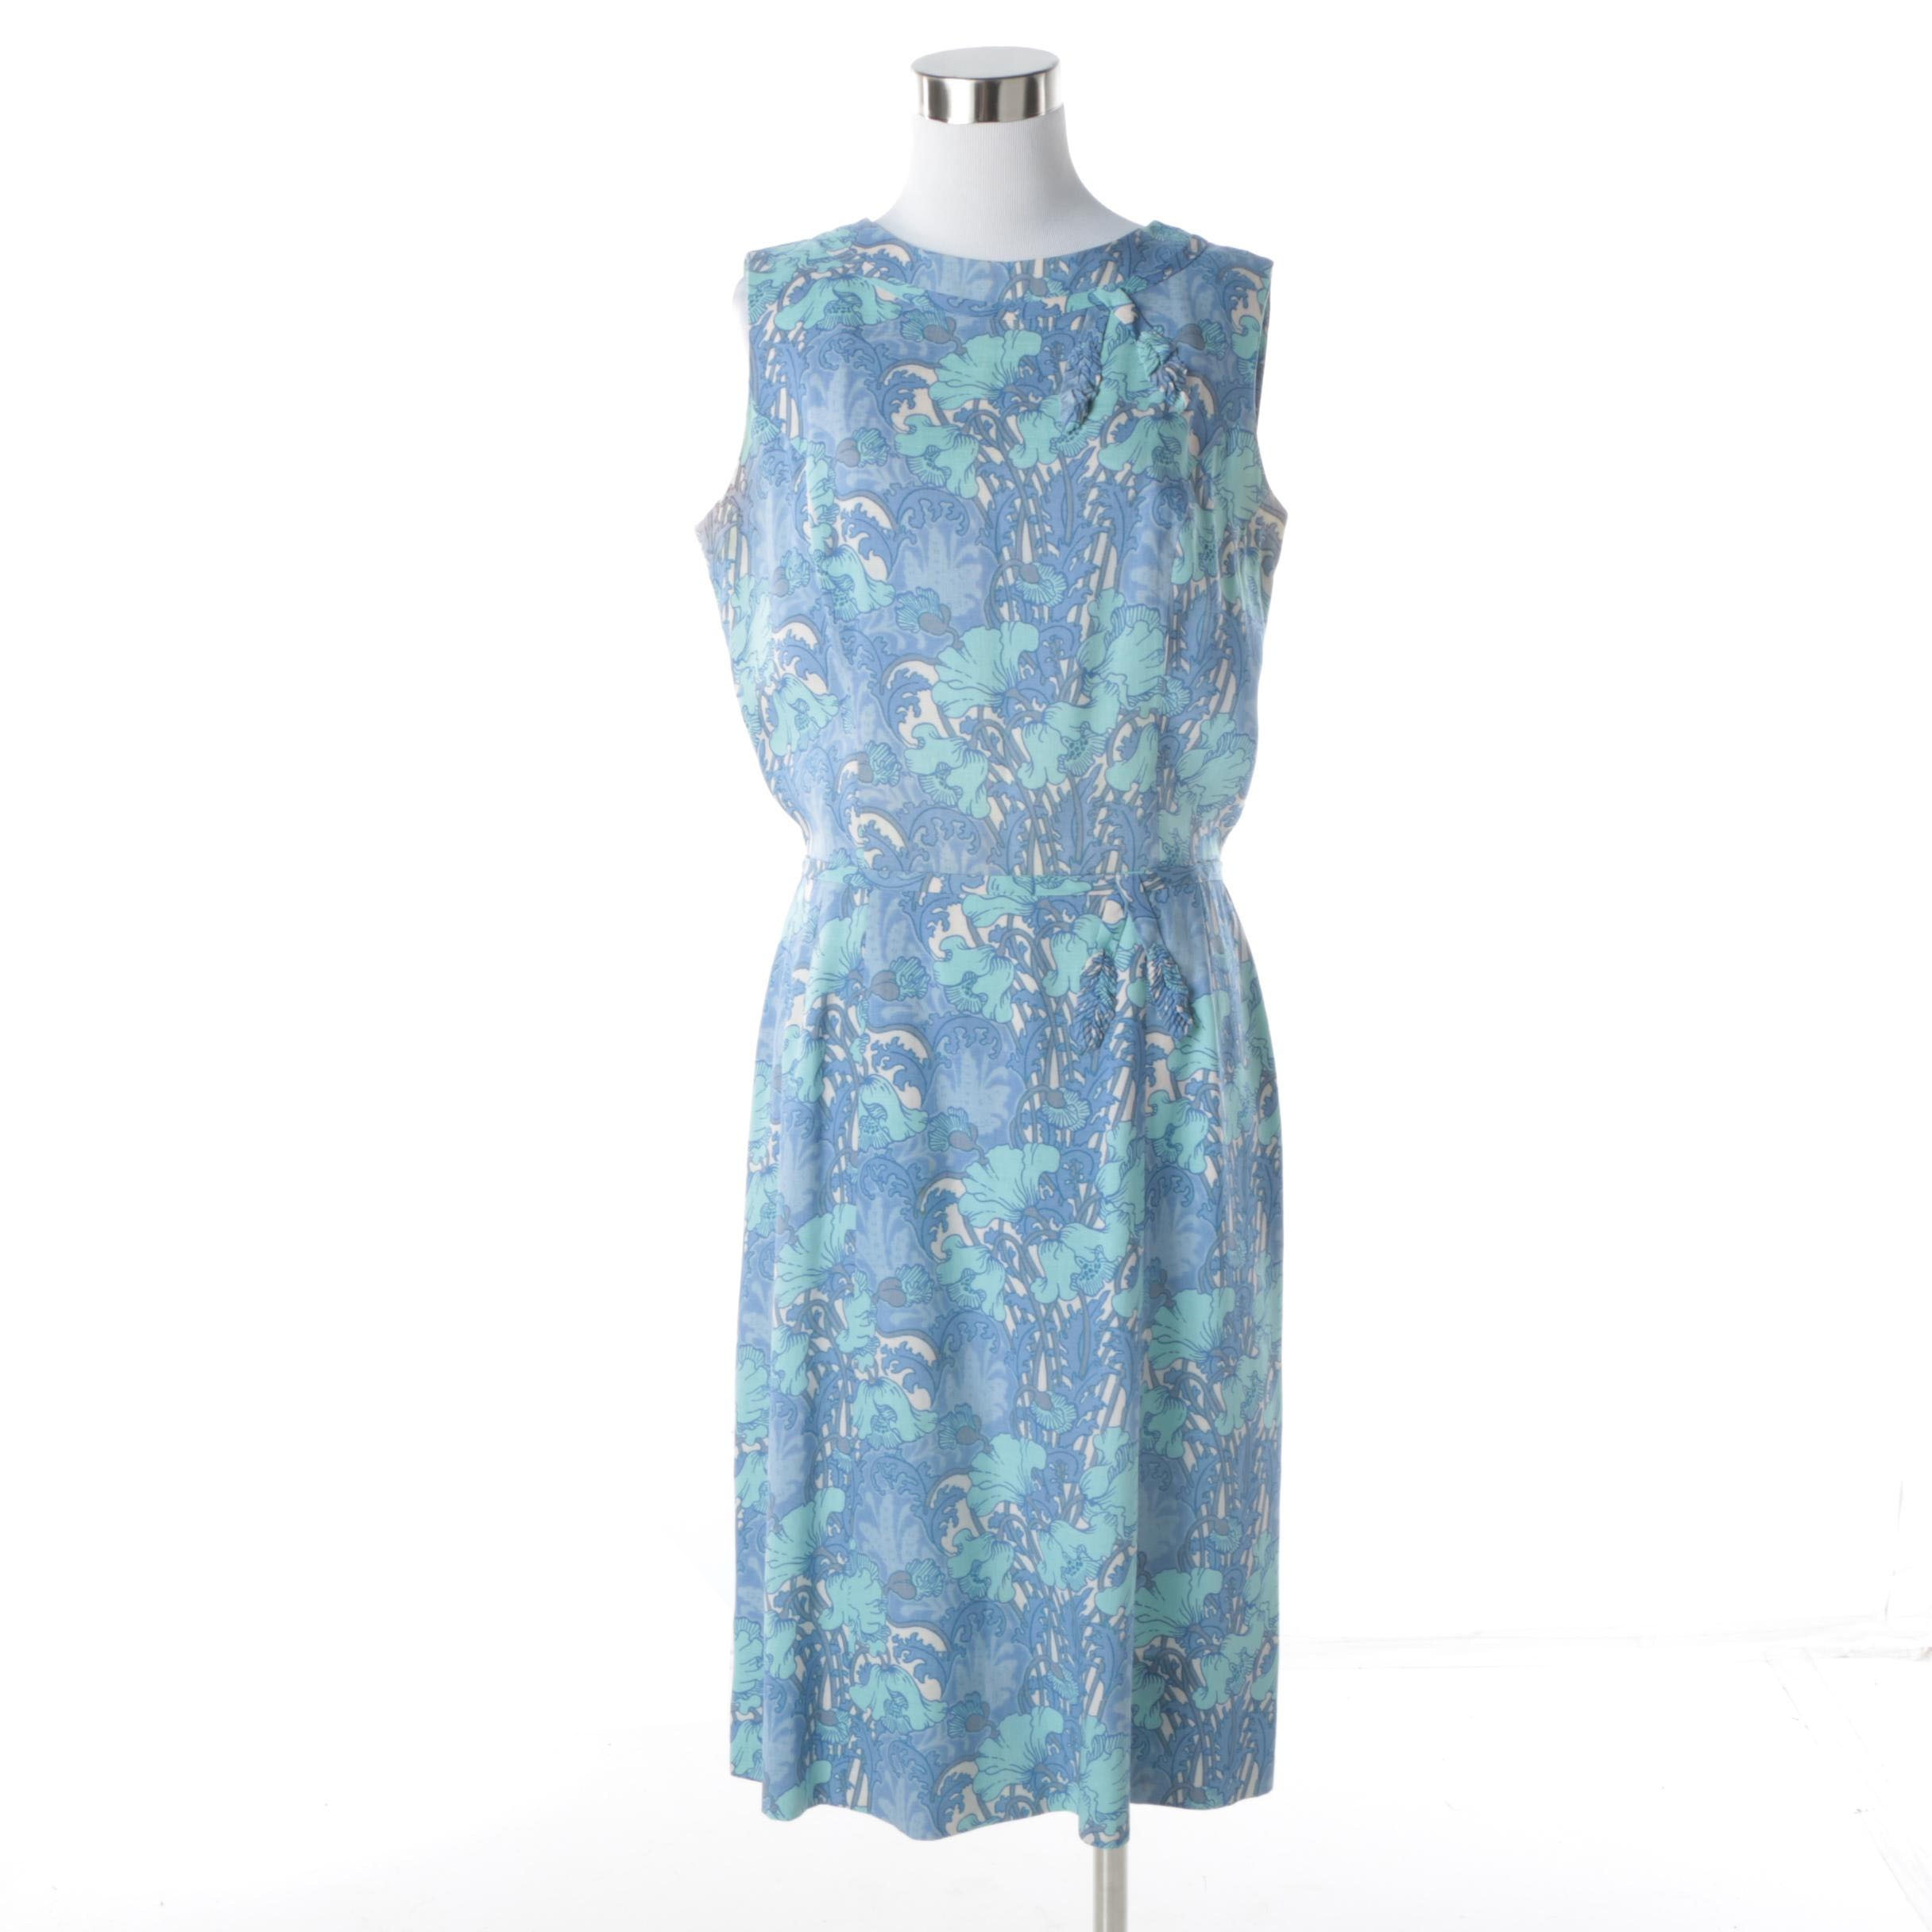 Circa 1960s Vintage Peck & Peck Botanical Print Sleeveless Dress